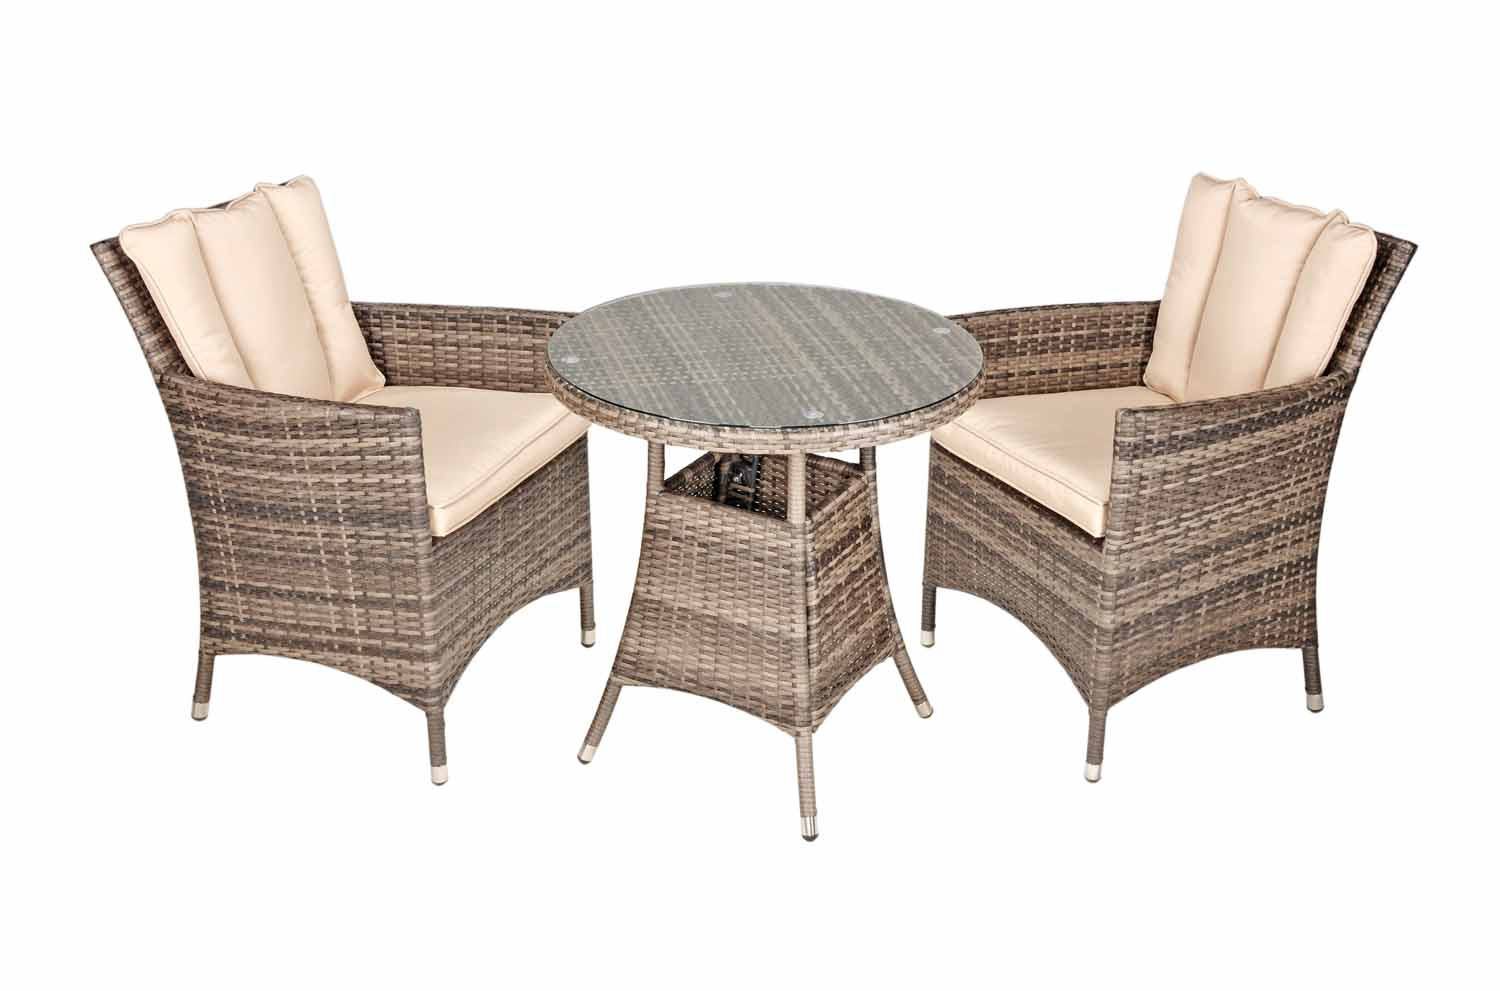 https://www.firstfurniture.co.uk/pub/media/catalog/product/k/e/kensington_carver_2_seat_bistro_set_1.jpg